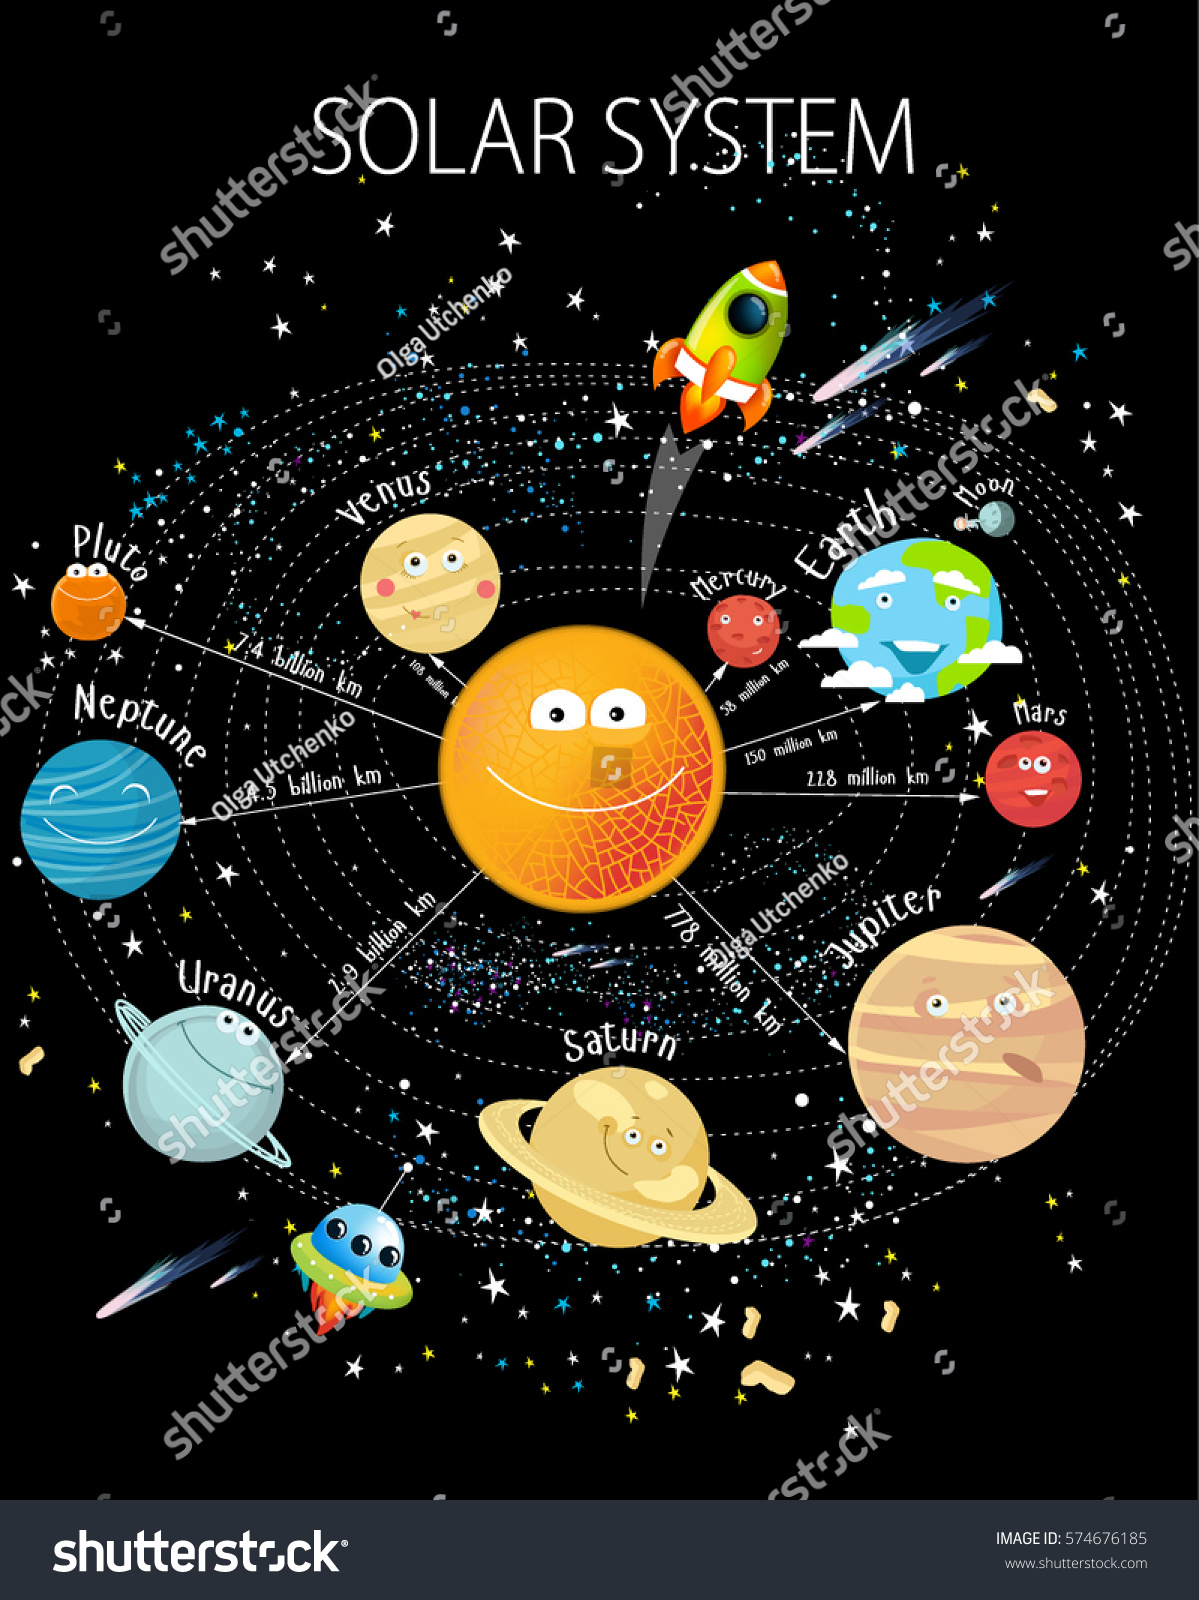 Solar System Planet Distances From The Sun